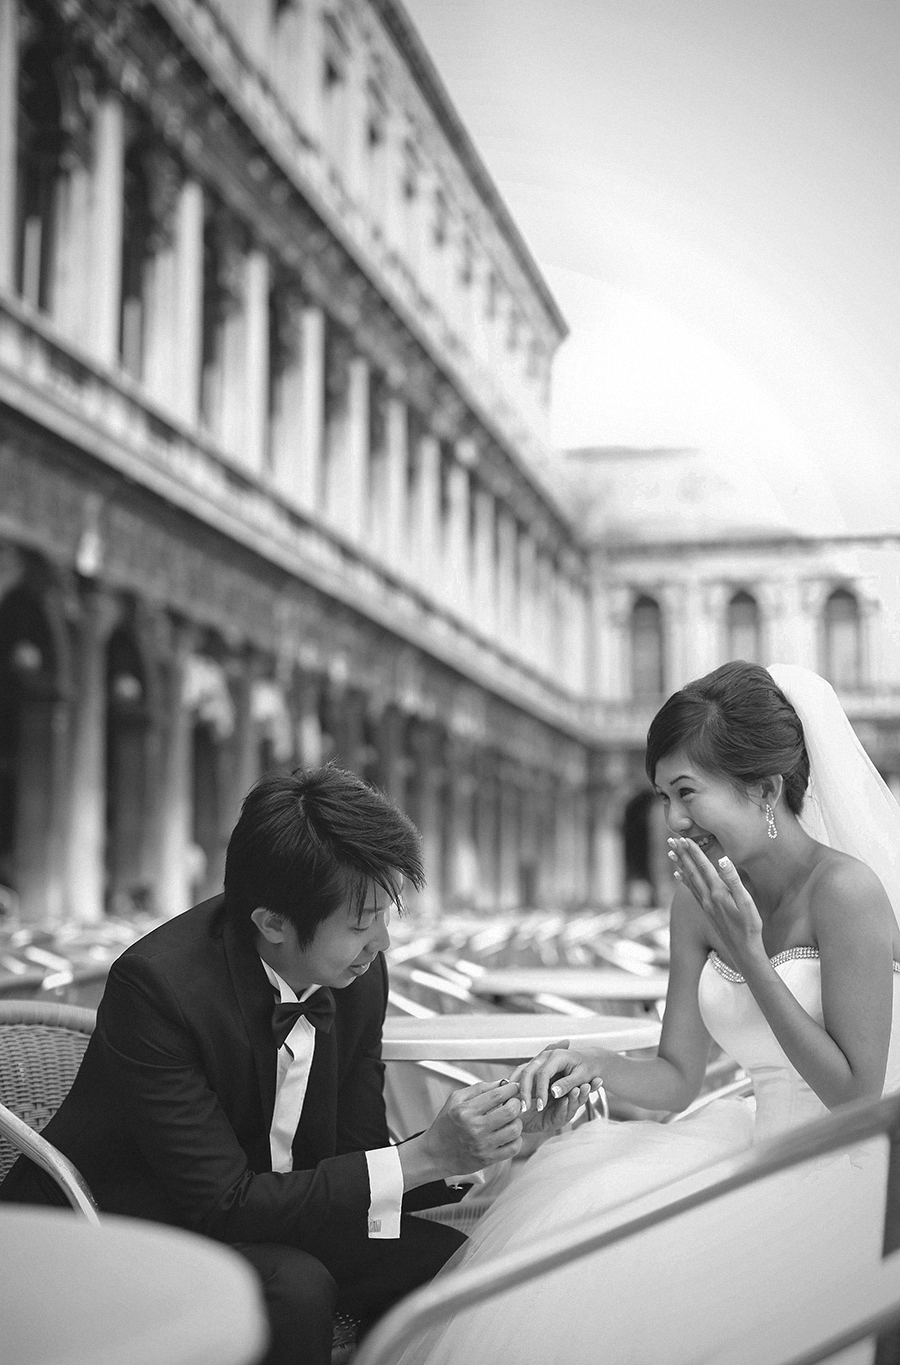 venice italy . wedding photography by kurt ahs . 05387.jpg